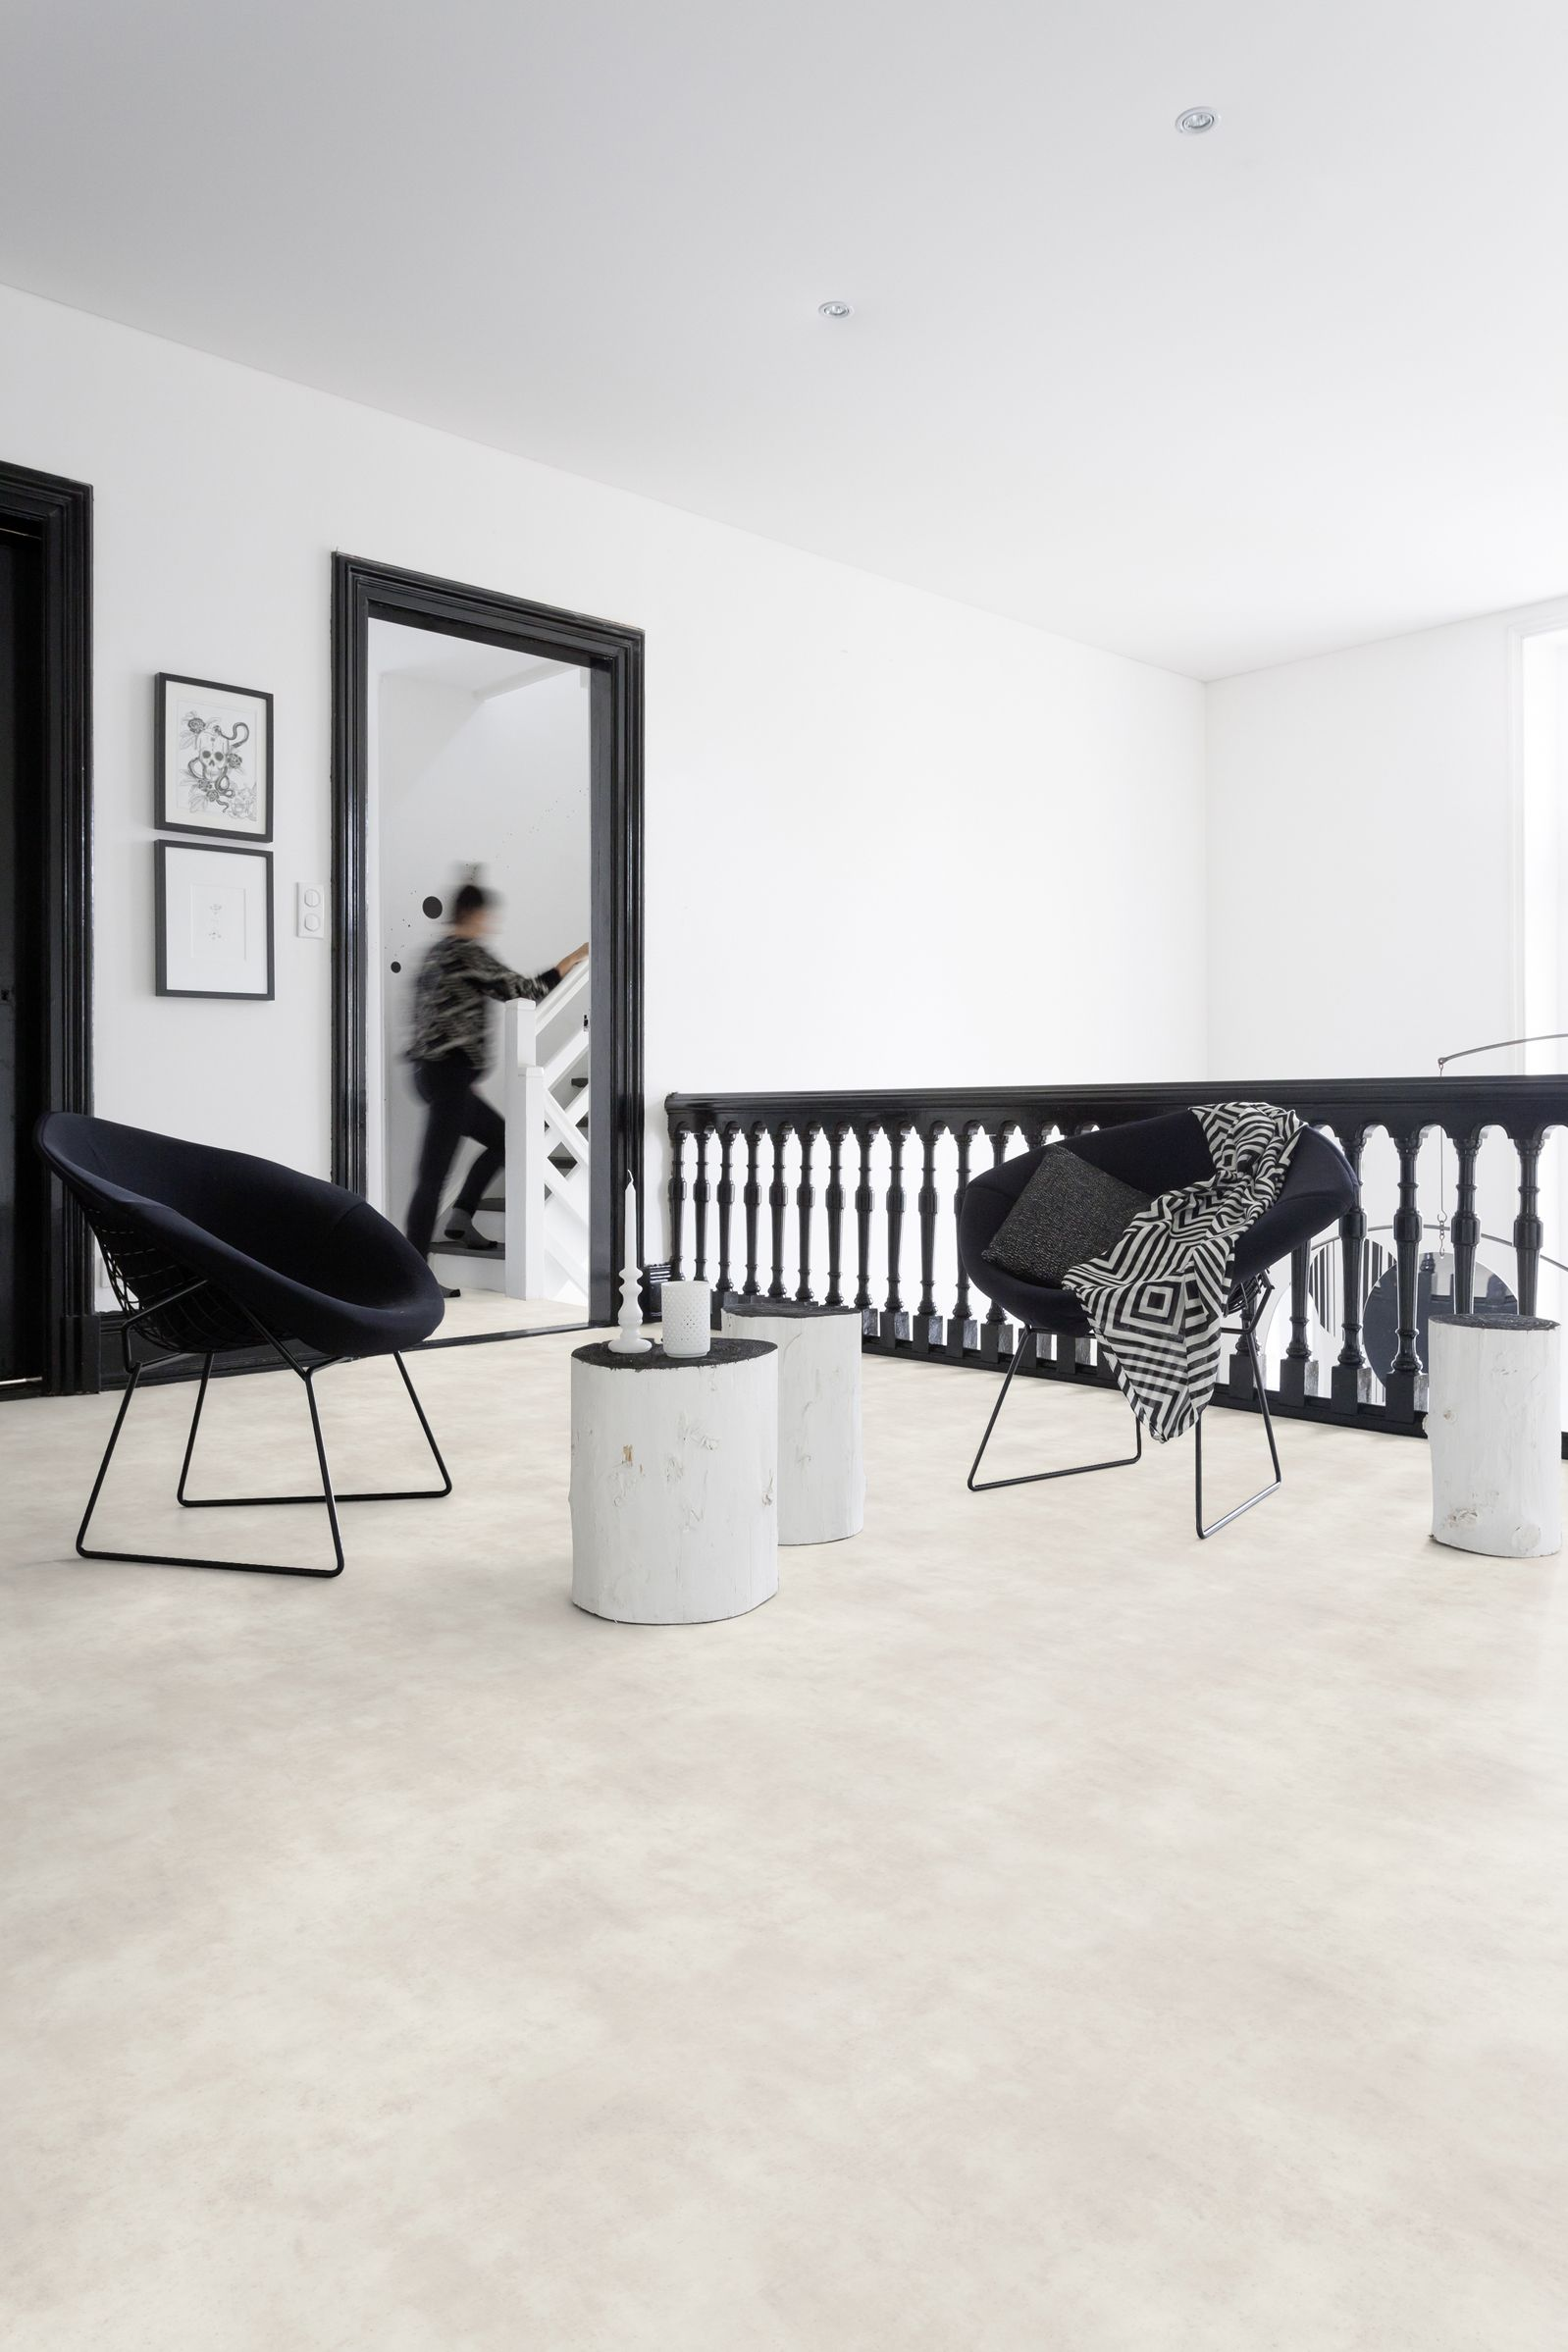 A core part of Gerflor's new Housing Collection is